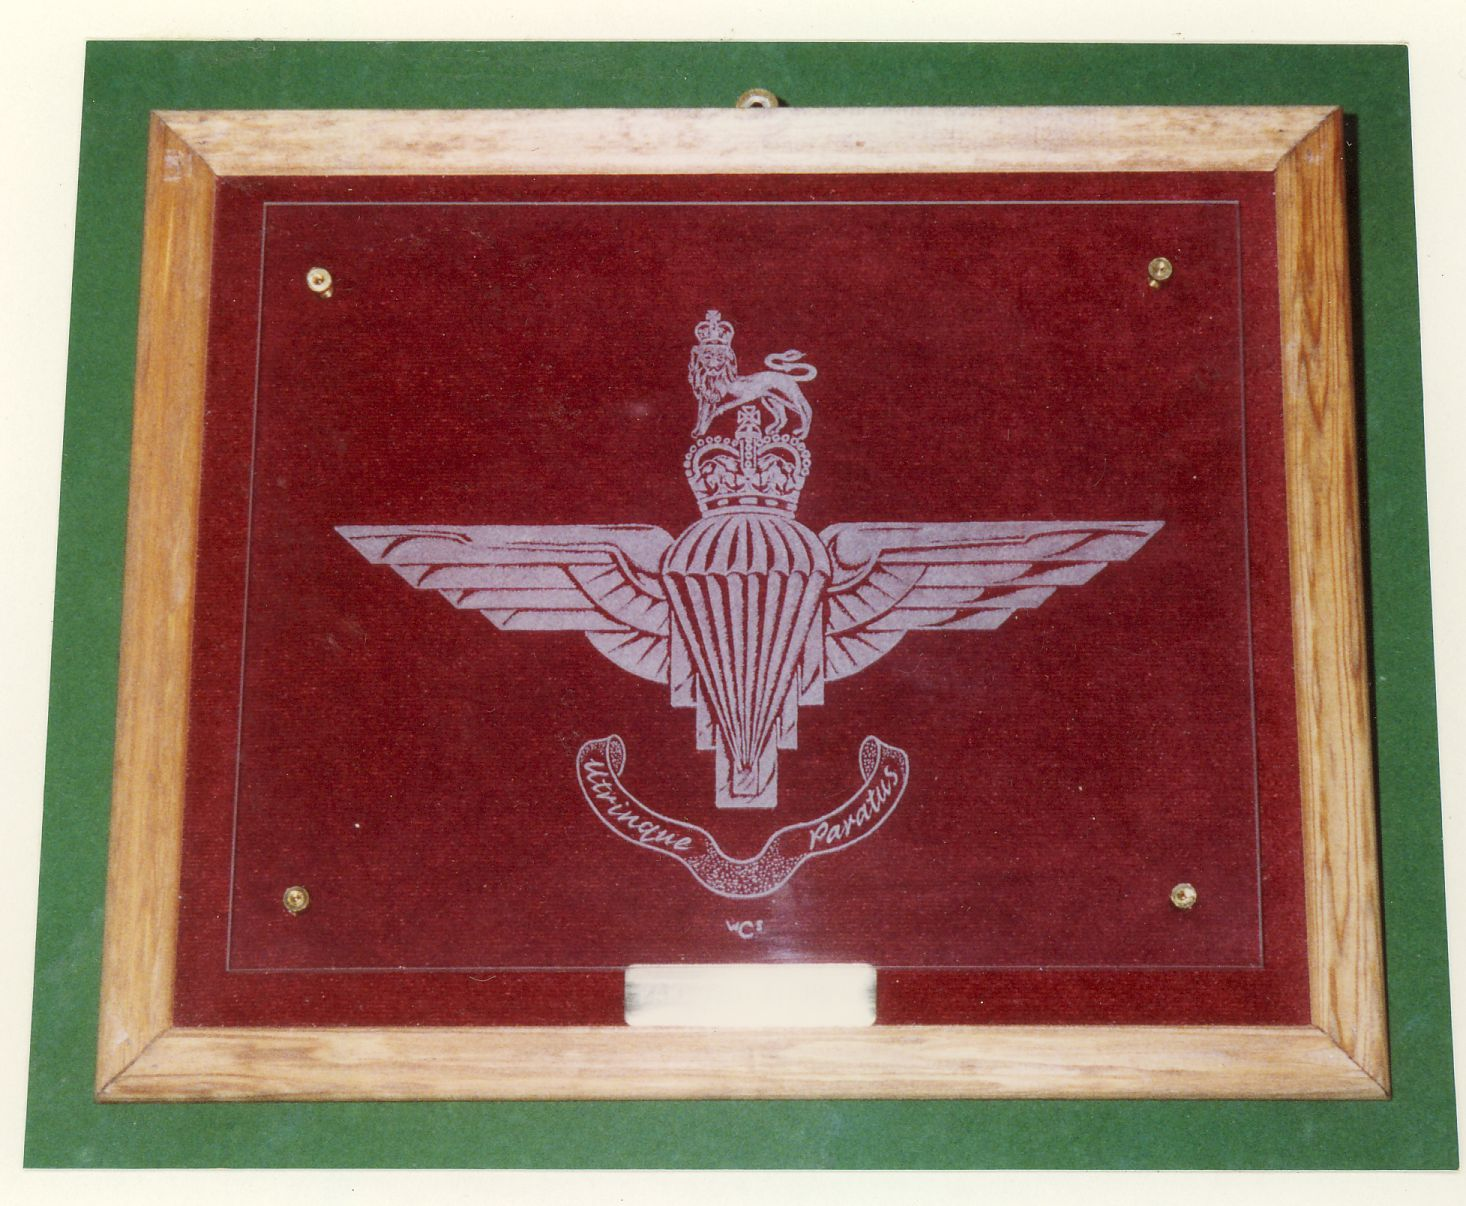 An engraving of the badge of the Parachute Regiment. On this occasion it is mounted above a maroon velvet background.